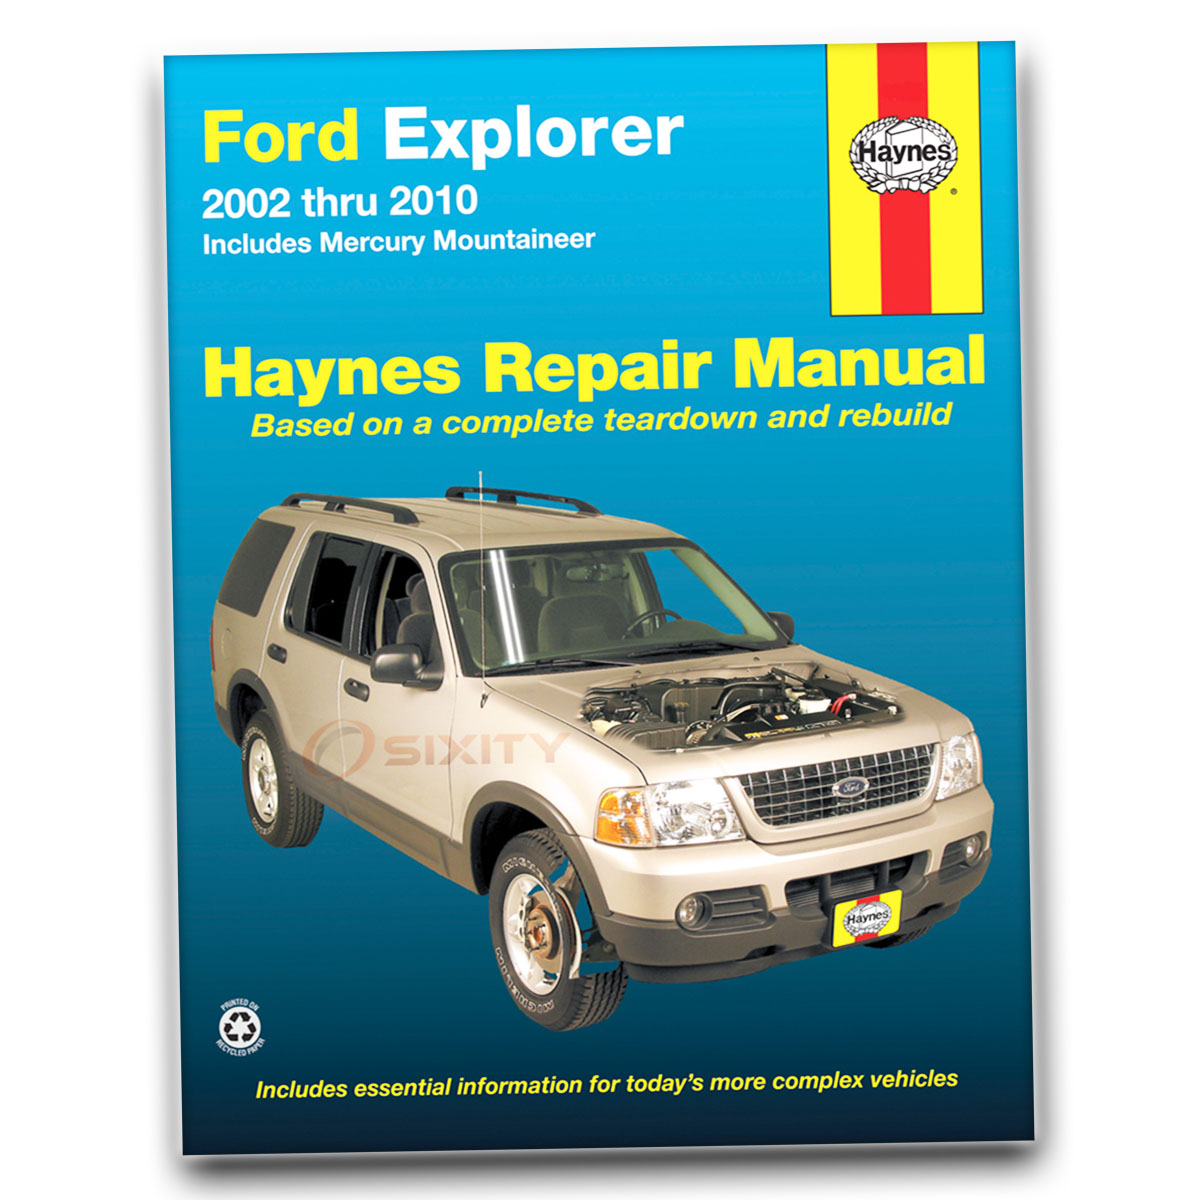 ford explorer haynes repair manual xlt nbx xls postal. Black Bedroom Furniture Sets. Home Design Ideas